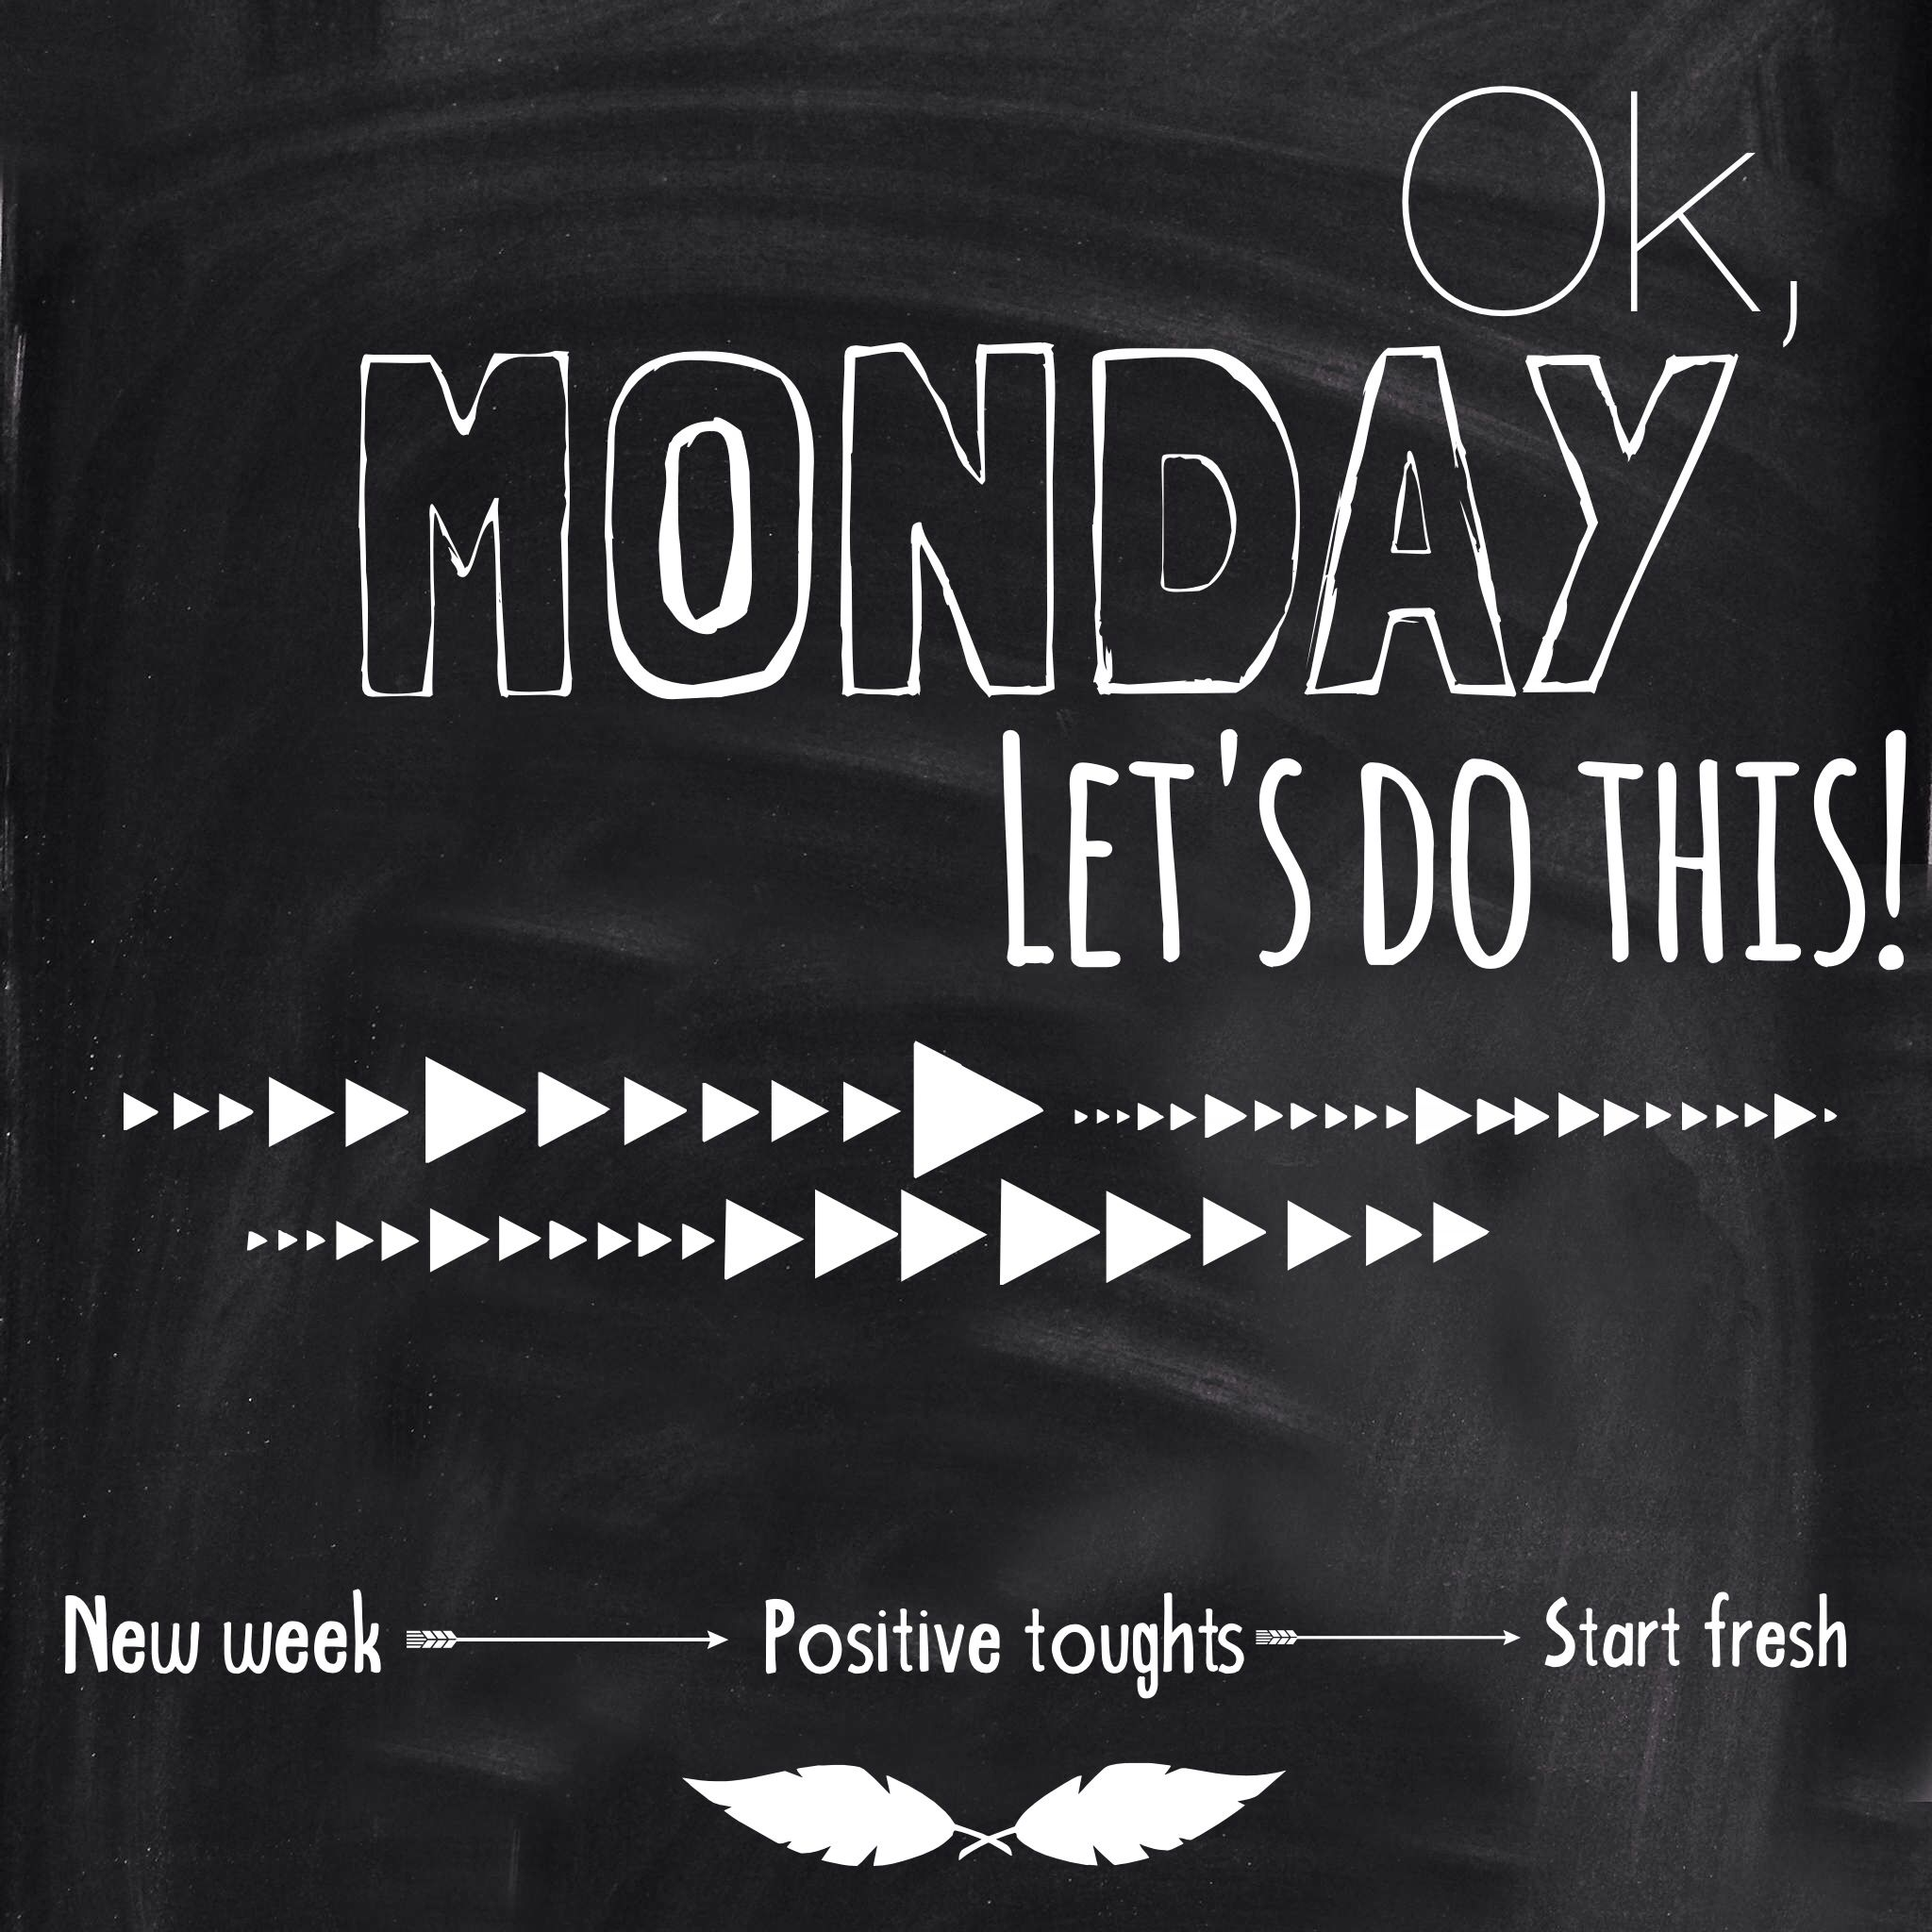 Week Quotes Unique Quote Ok Monday Let's Do This New Week Positive Thou